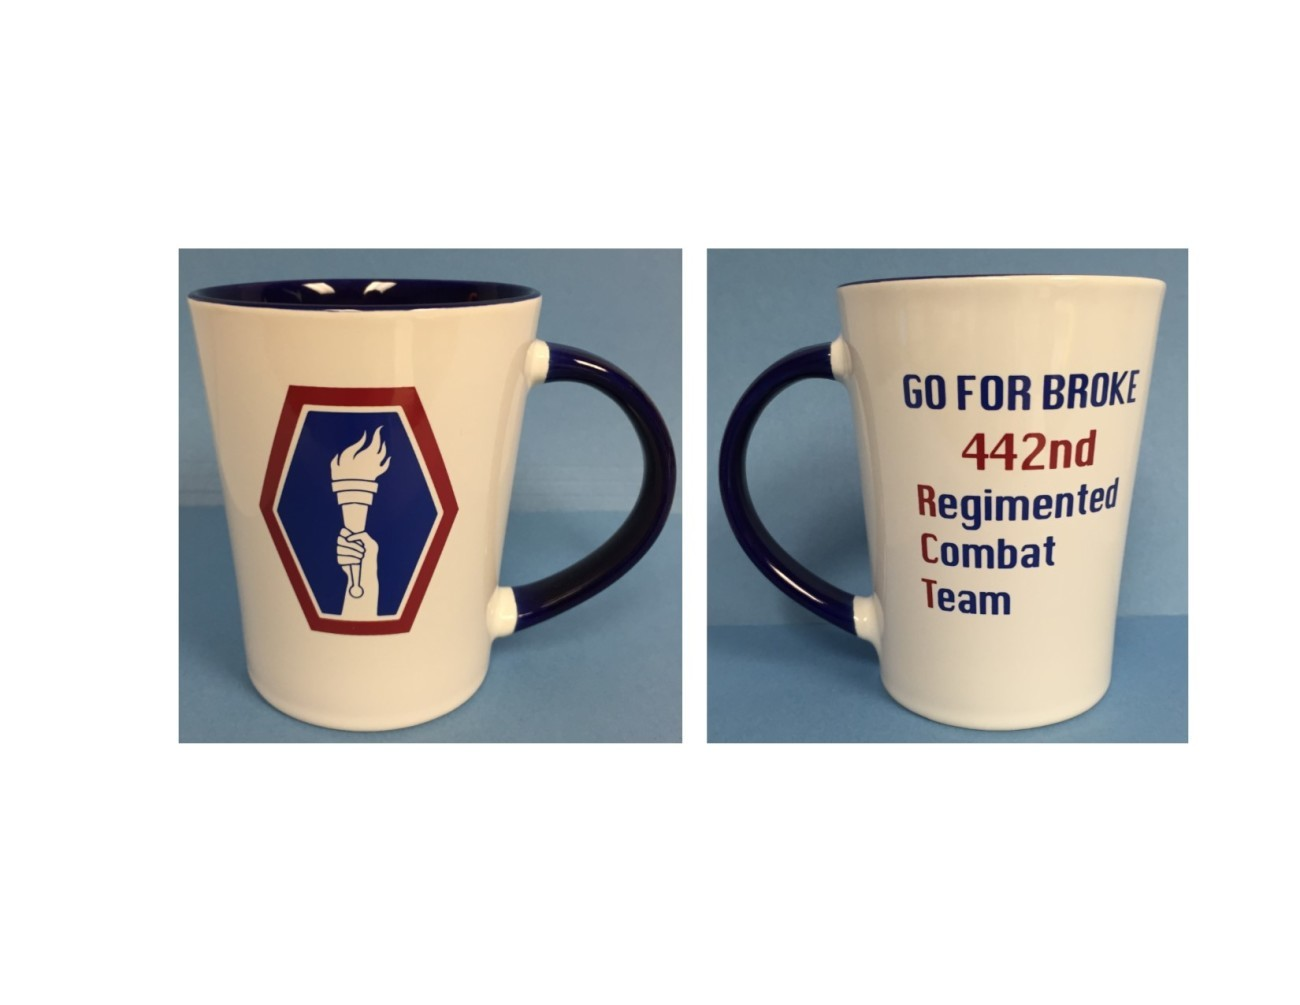 Unit Crest Go For Broke 442nd Regimental Combat Team Mug